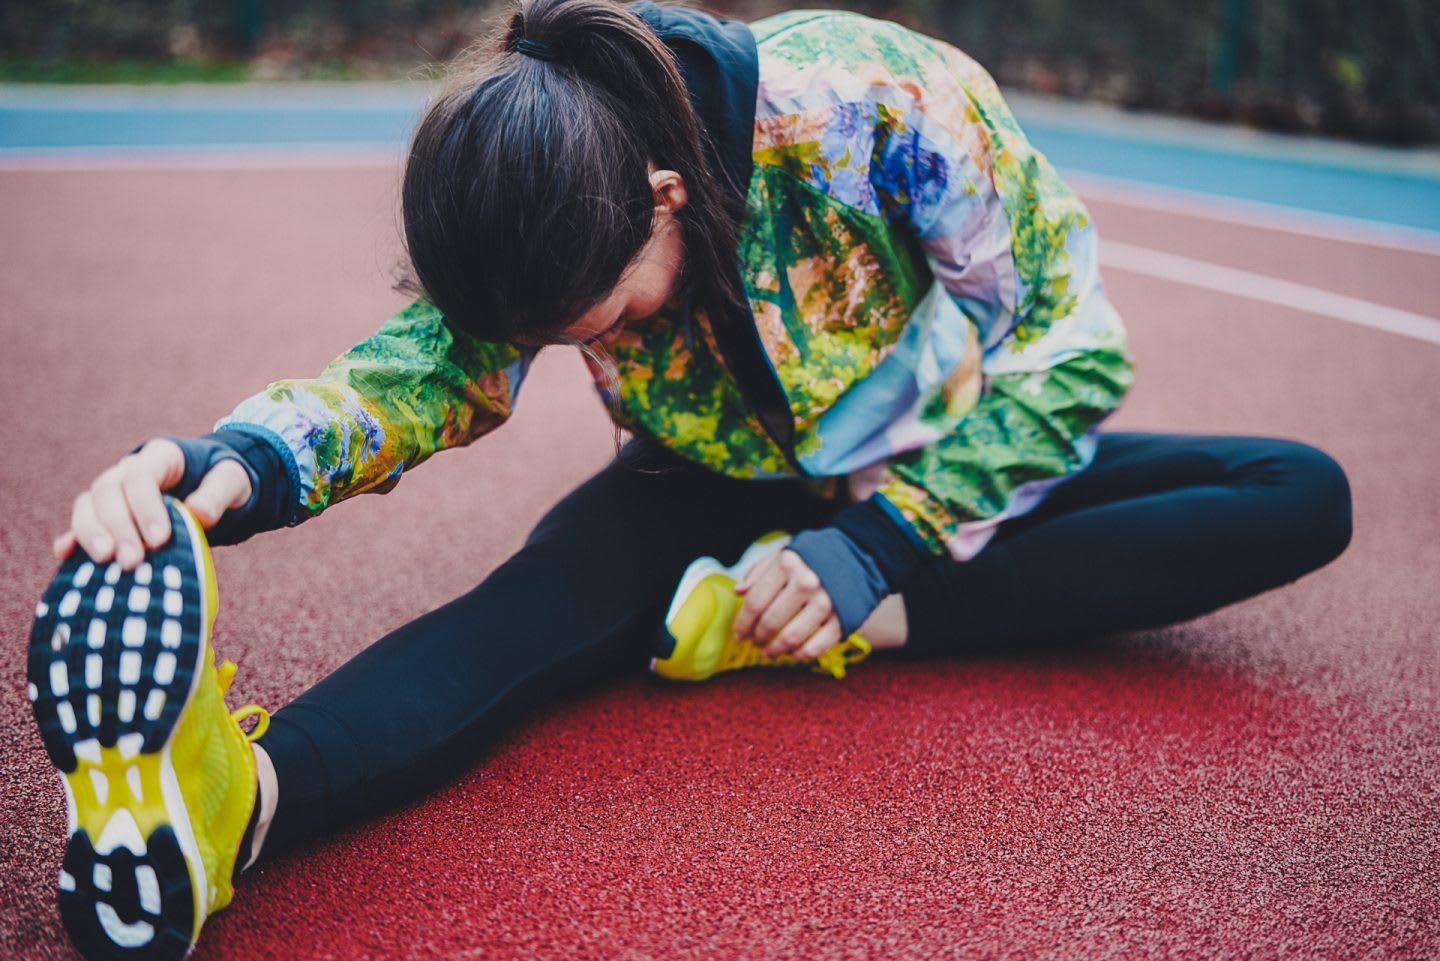 A woman stretches her right leg forward on the ground in preparation for a workout. stretching, preparation, process, routine.